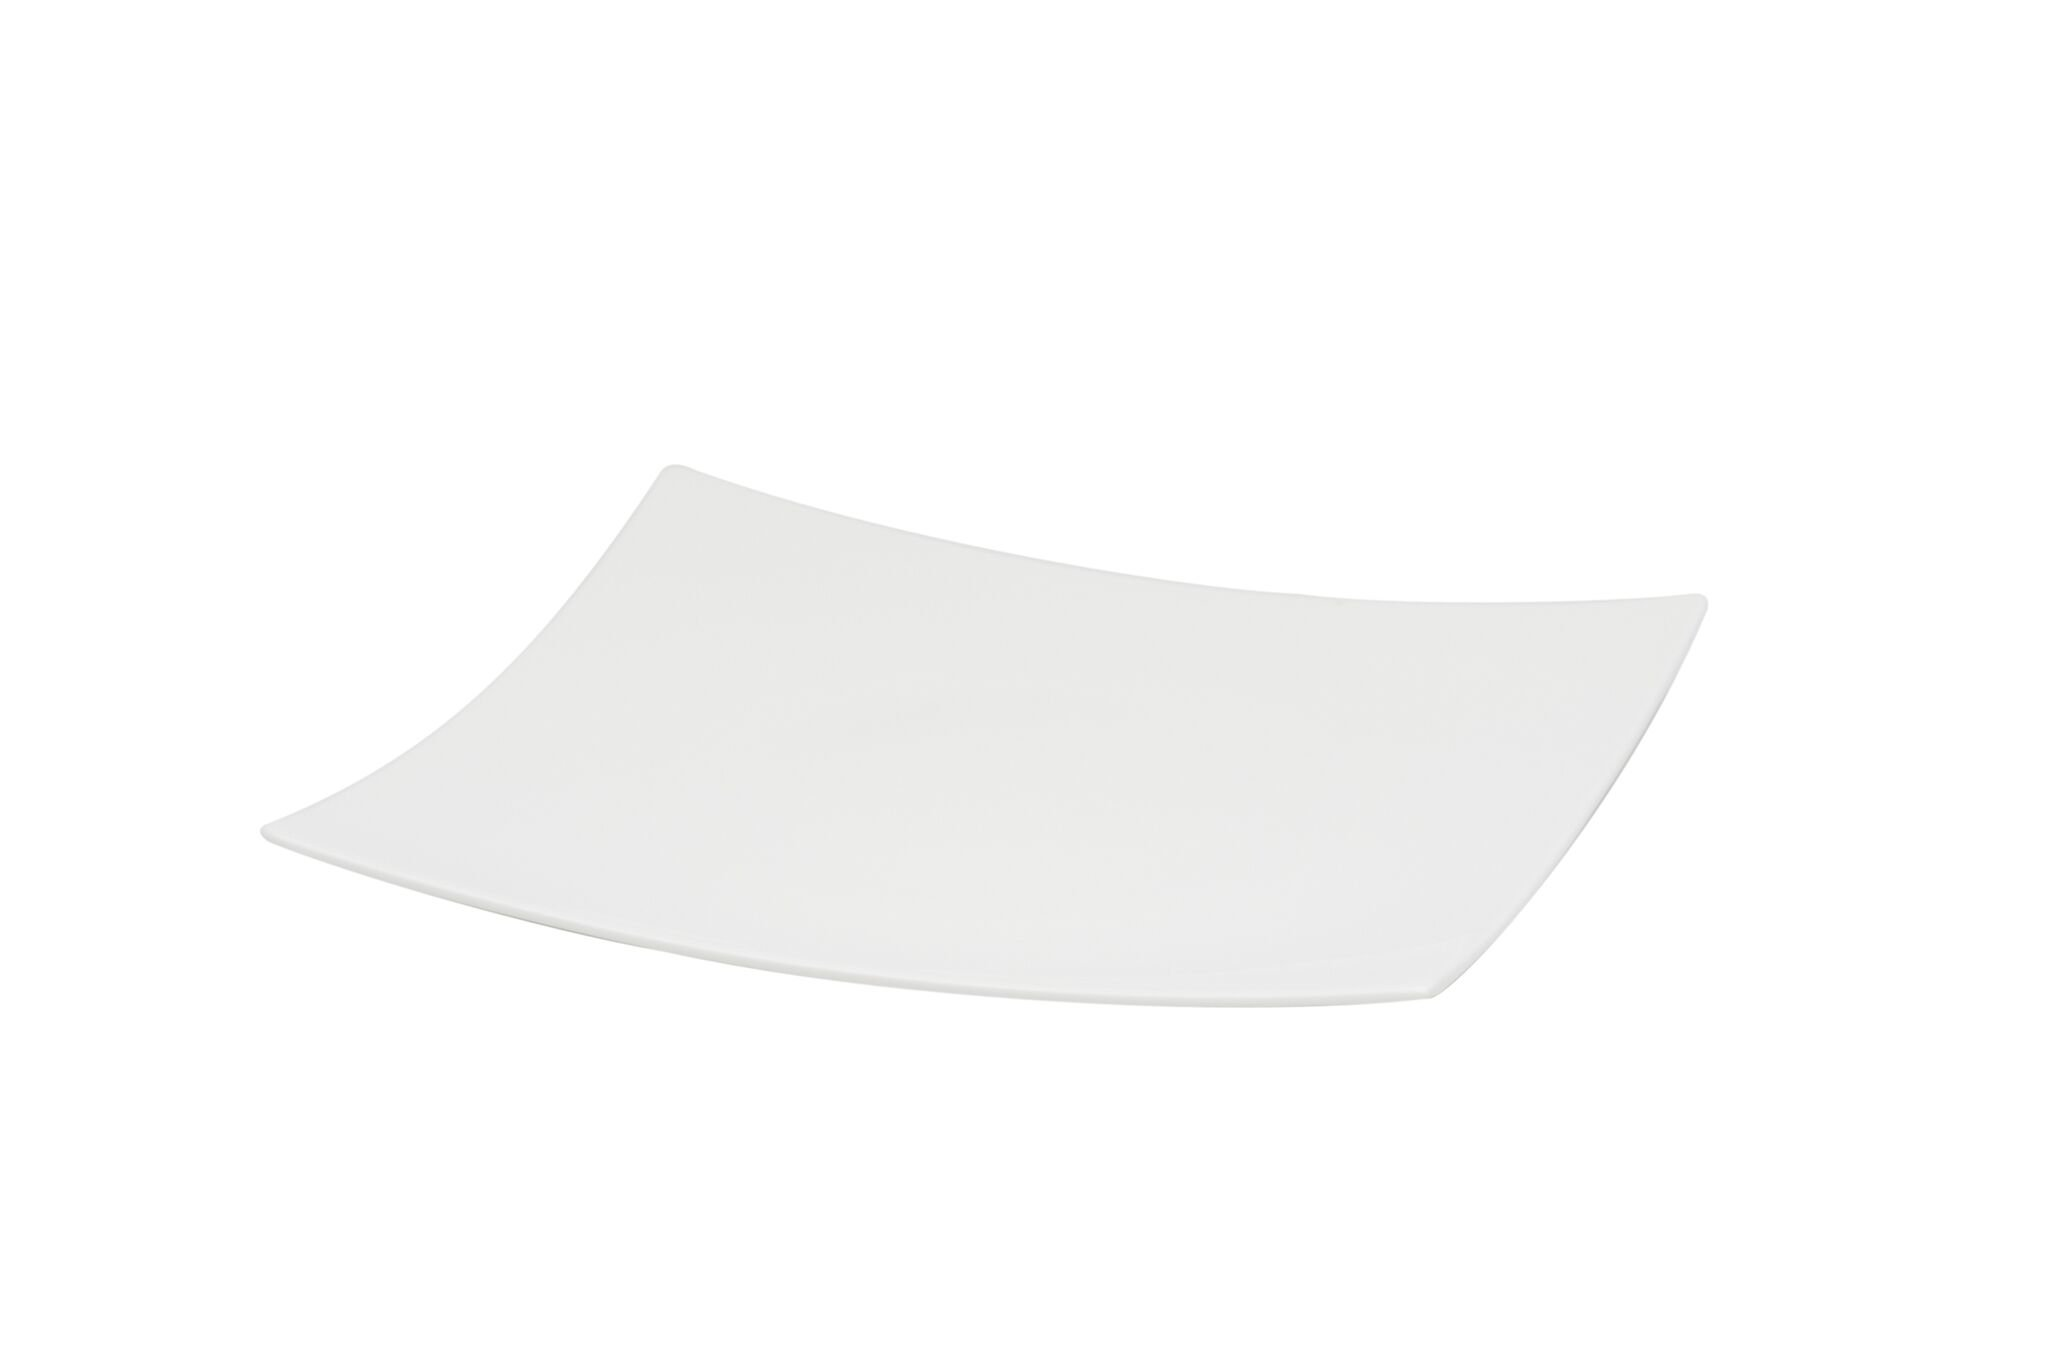 Red Vanilla Extreme Square Dinner Plate, Set Of 6, 10'', White by Red Vanilla